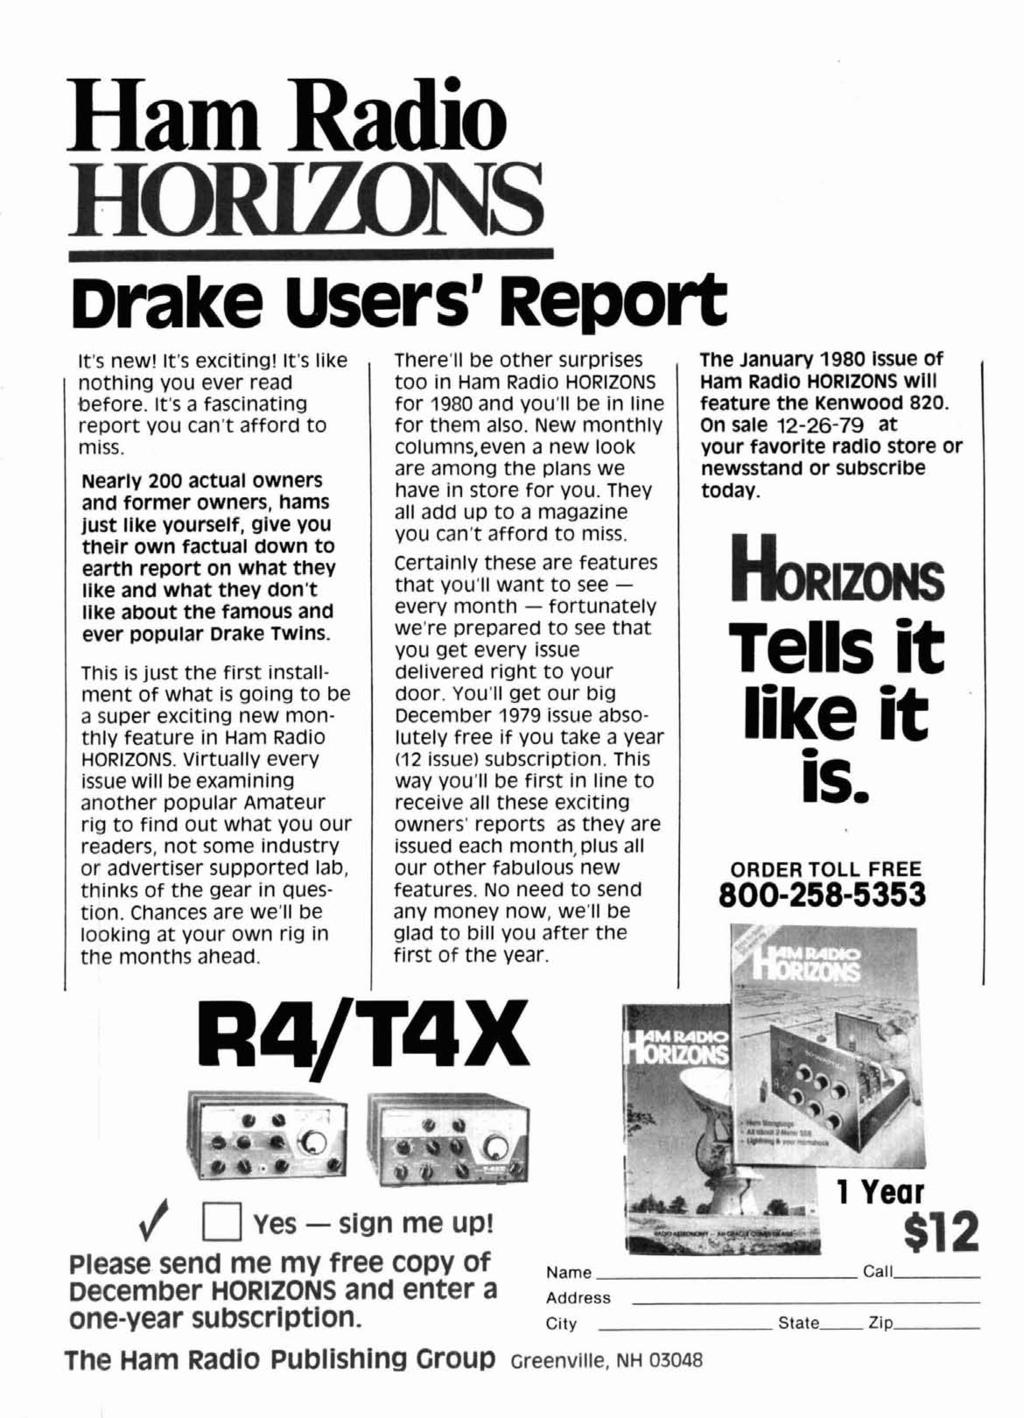 Ham Radio Drake Users' Report It's new! It's exciting! It's like nothing you ever read before. It's a fascinating report you can't afford to miss.